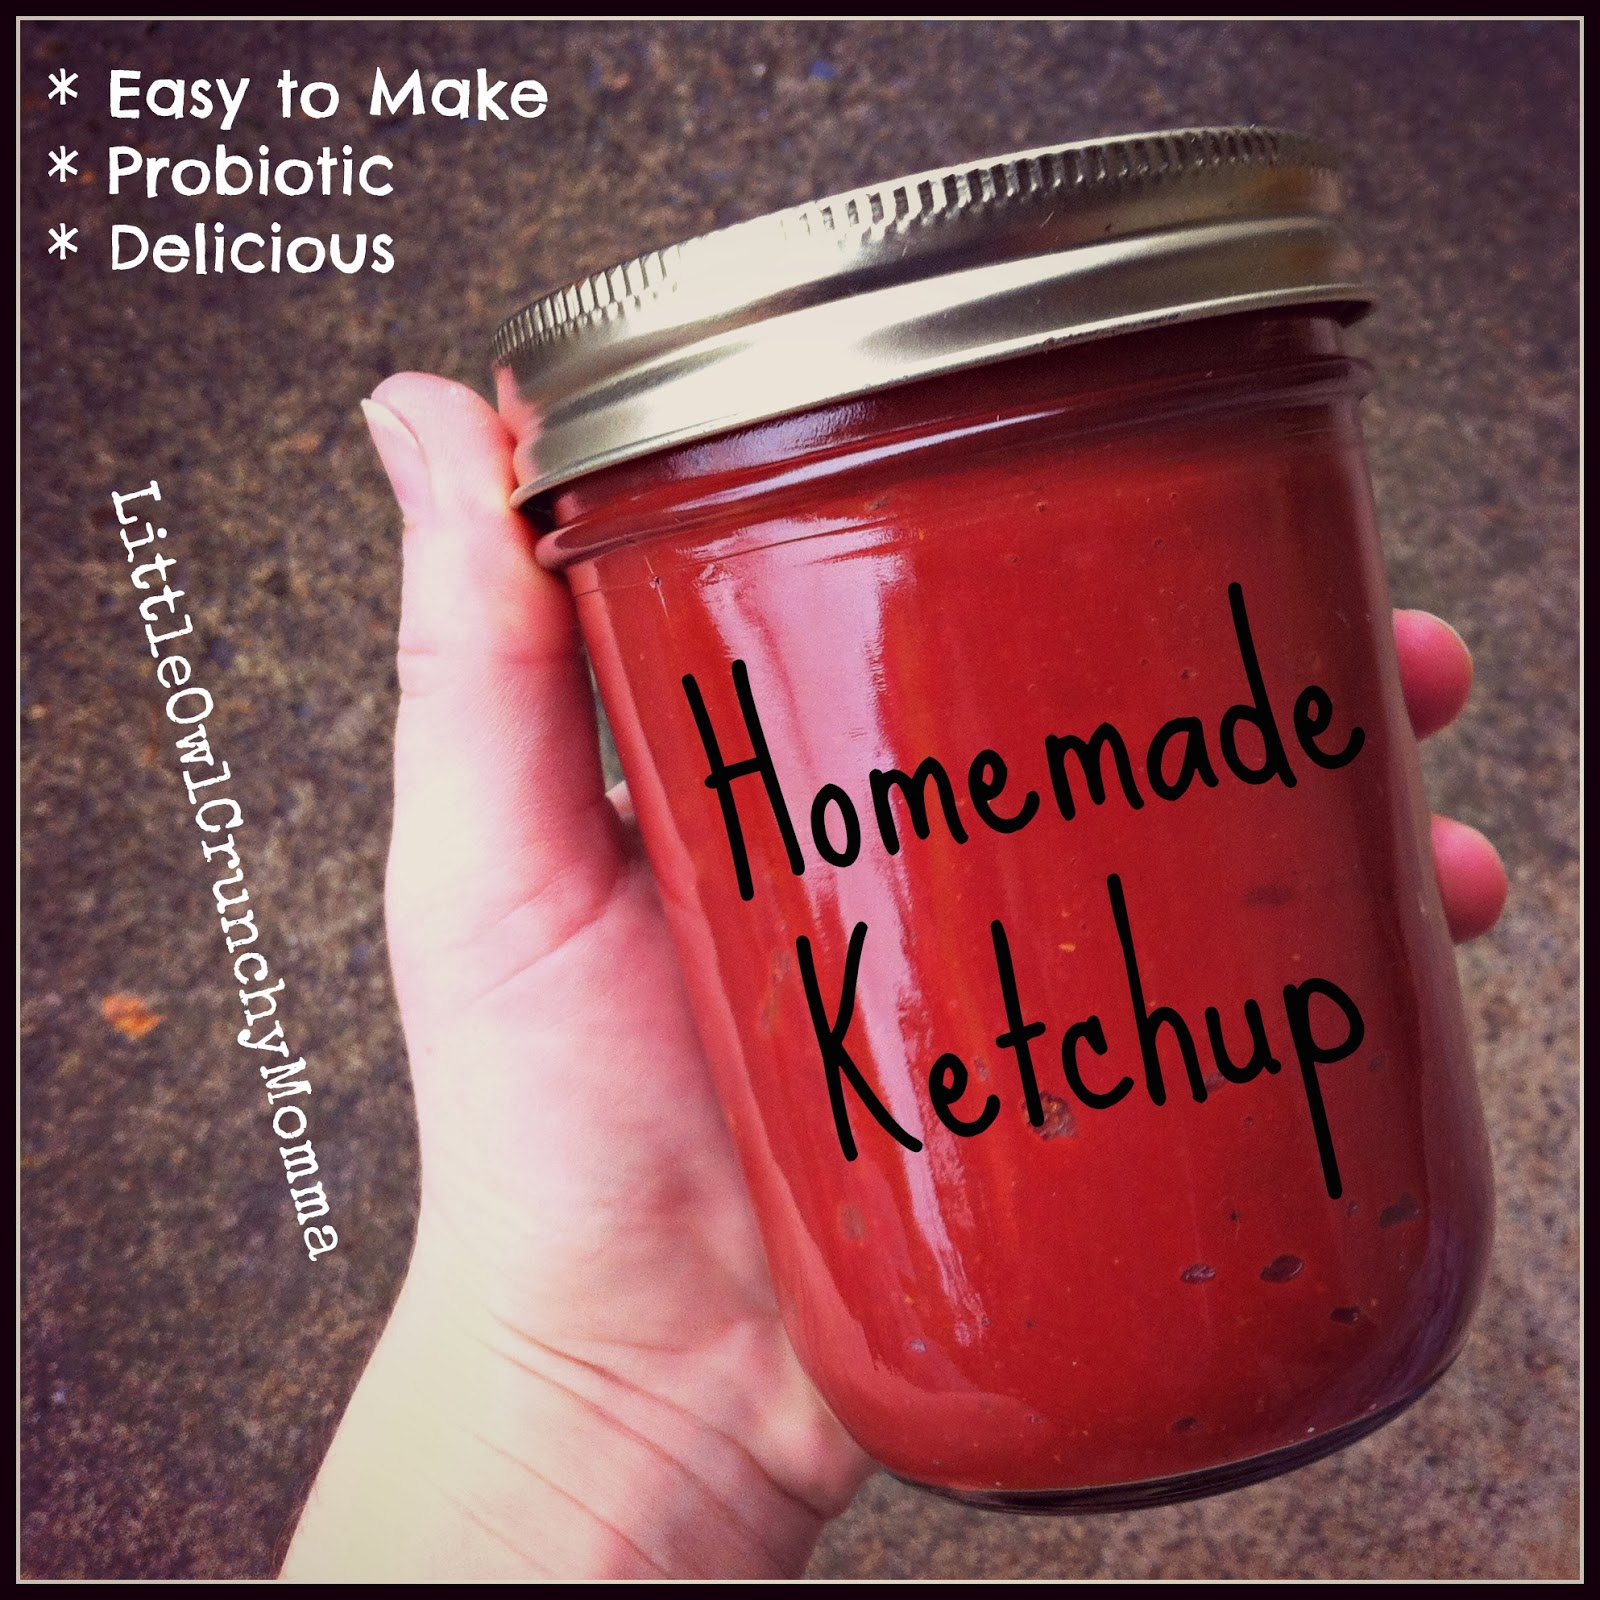 Homemade Ketchup (Probiotic) by Little Owl Crunchy Momma